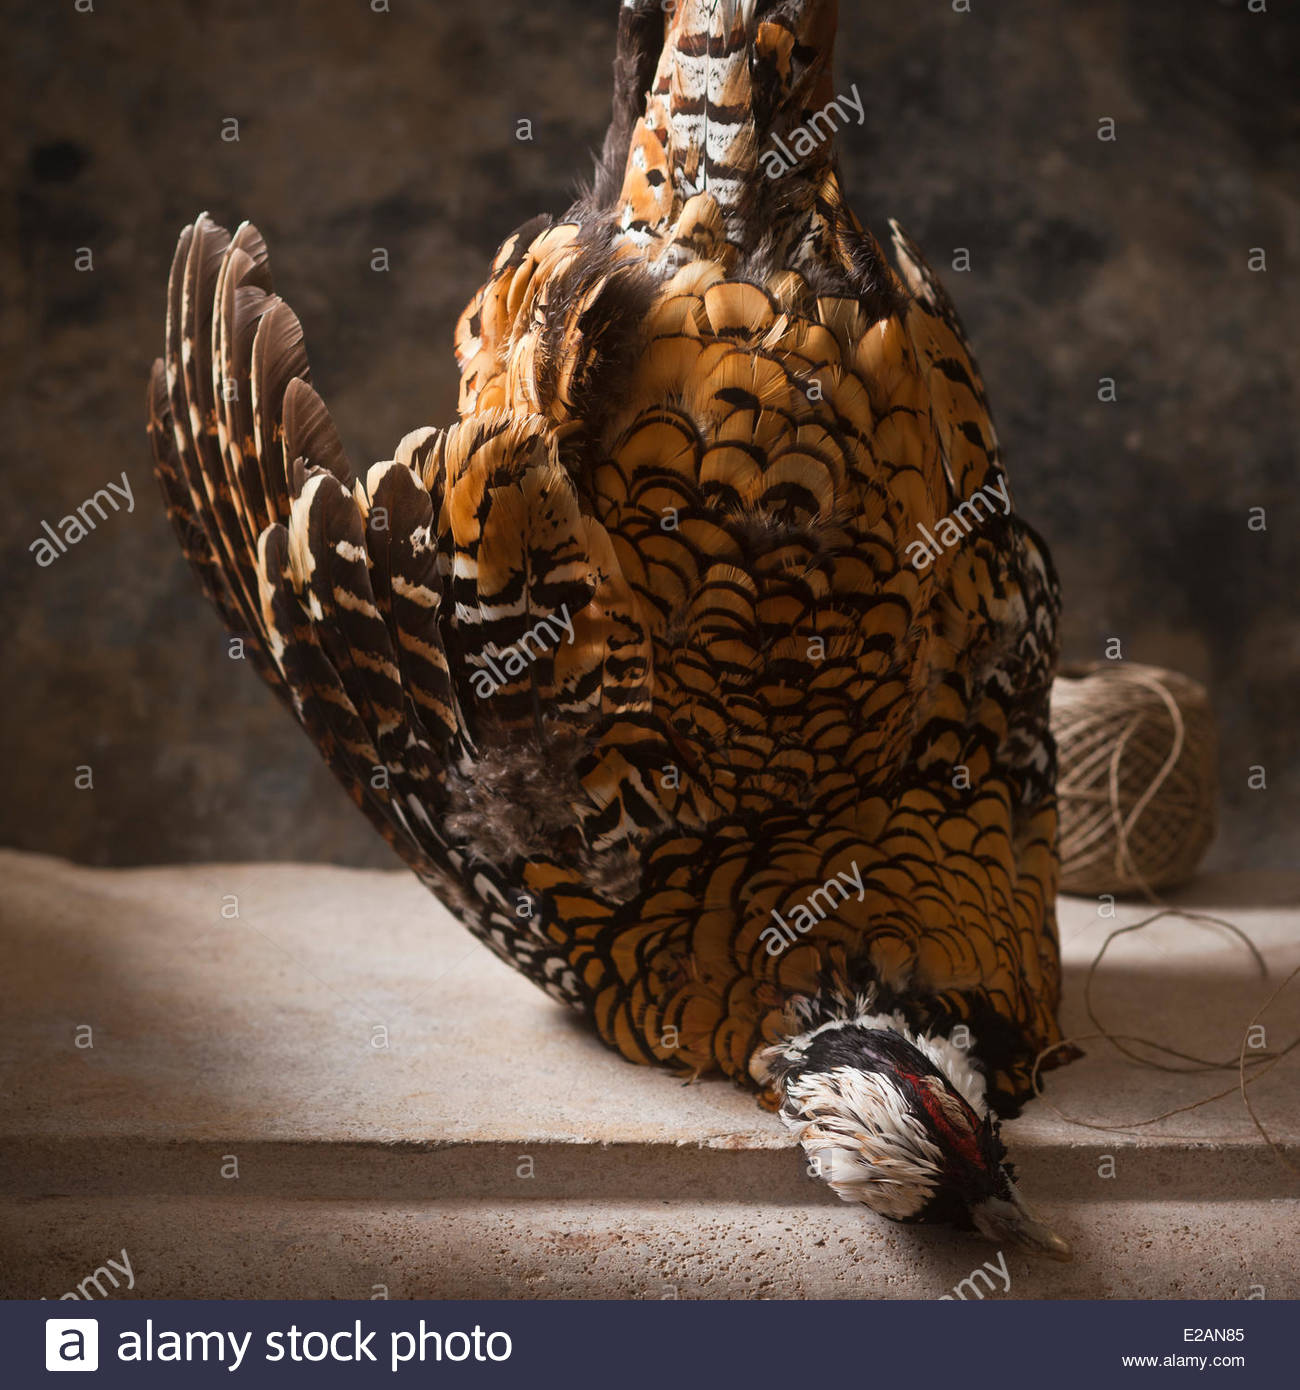 General Gastronomy, Pheasant Hen pheasant Revered and worshiped the Butcher Nivernaise, styling, Valerie Lhomme - Stock Image